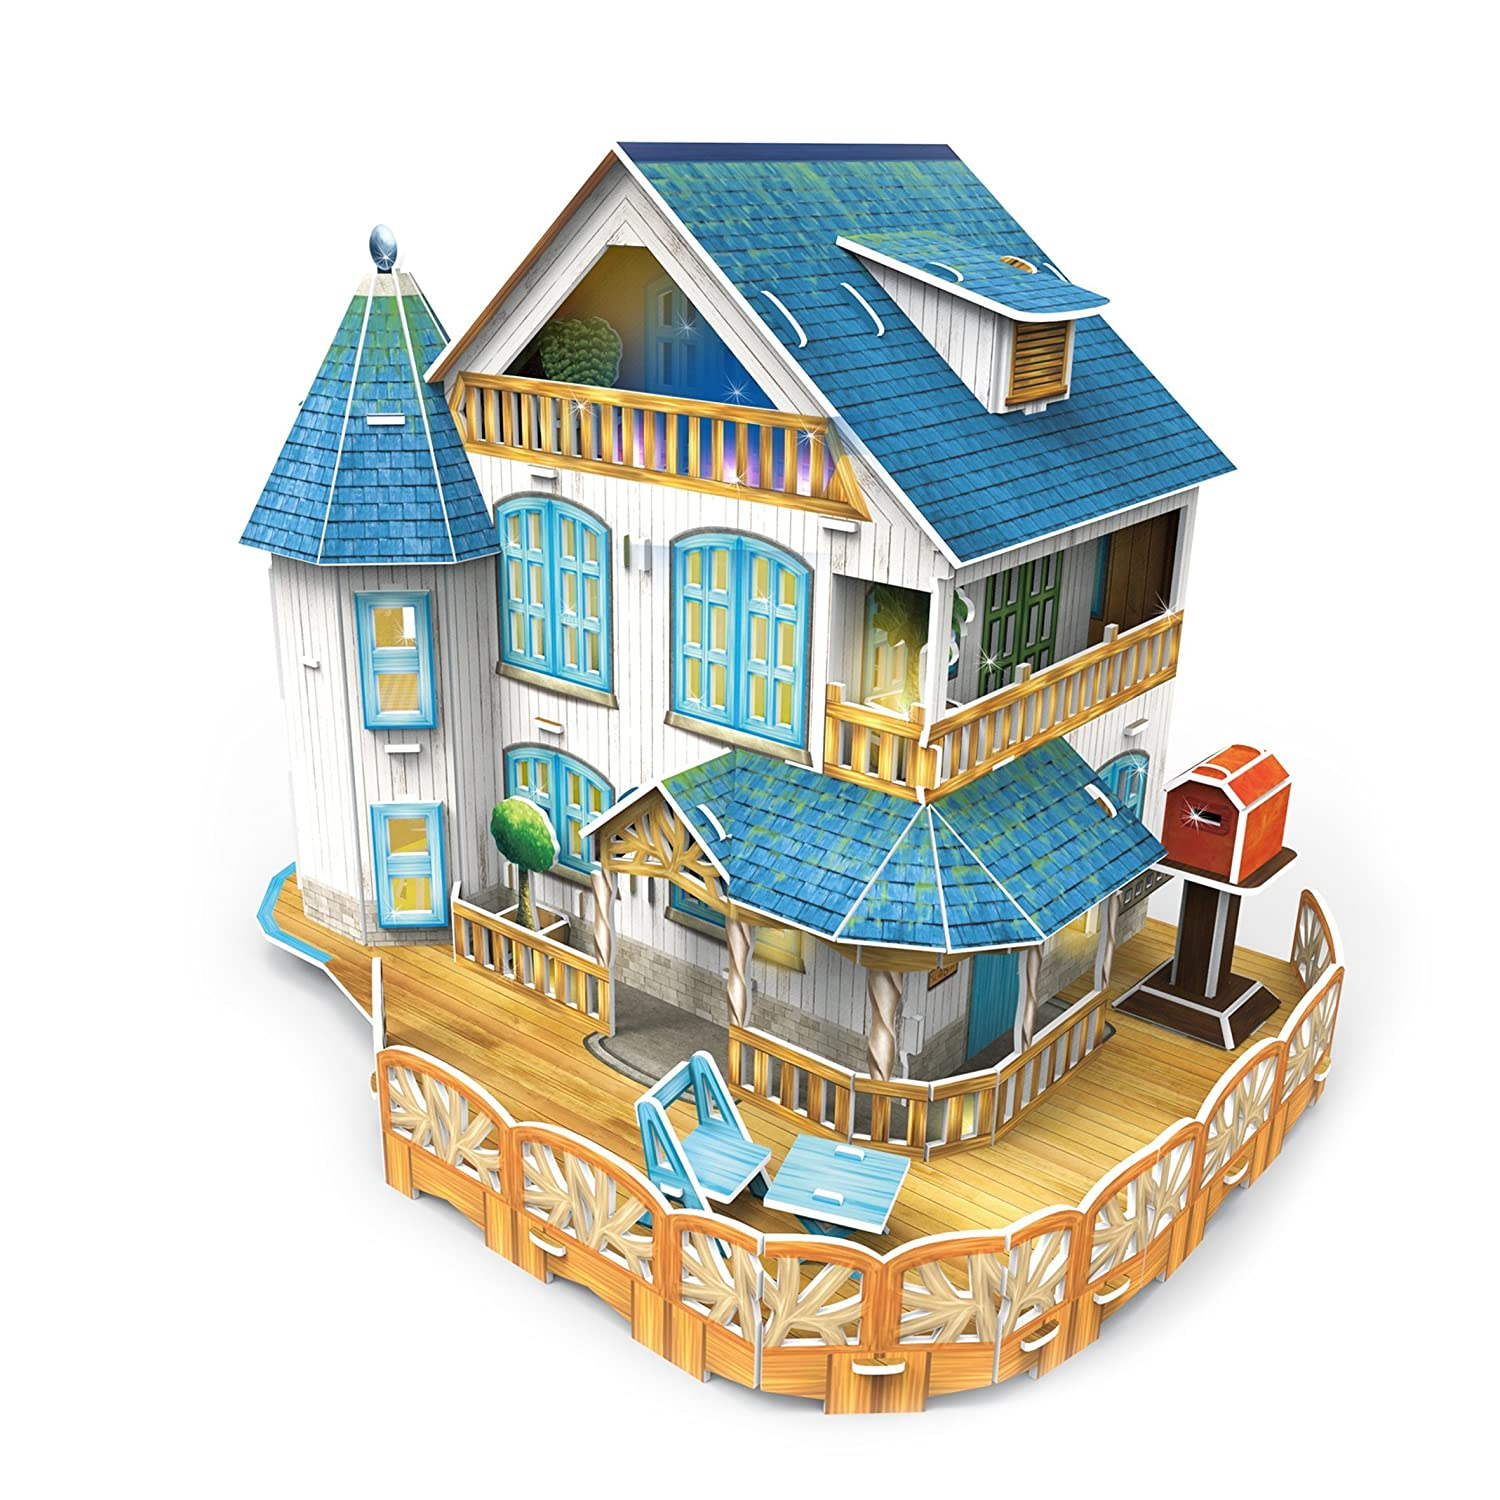 autentico en linea CubicFun Pretty Classic Rural Villa Villa Villa Dollhouse 3D Puzzle Place P635h DIY W LED Lights and furniture Great Holiday gift by 3D Puzzle Place  diseñador en linea